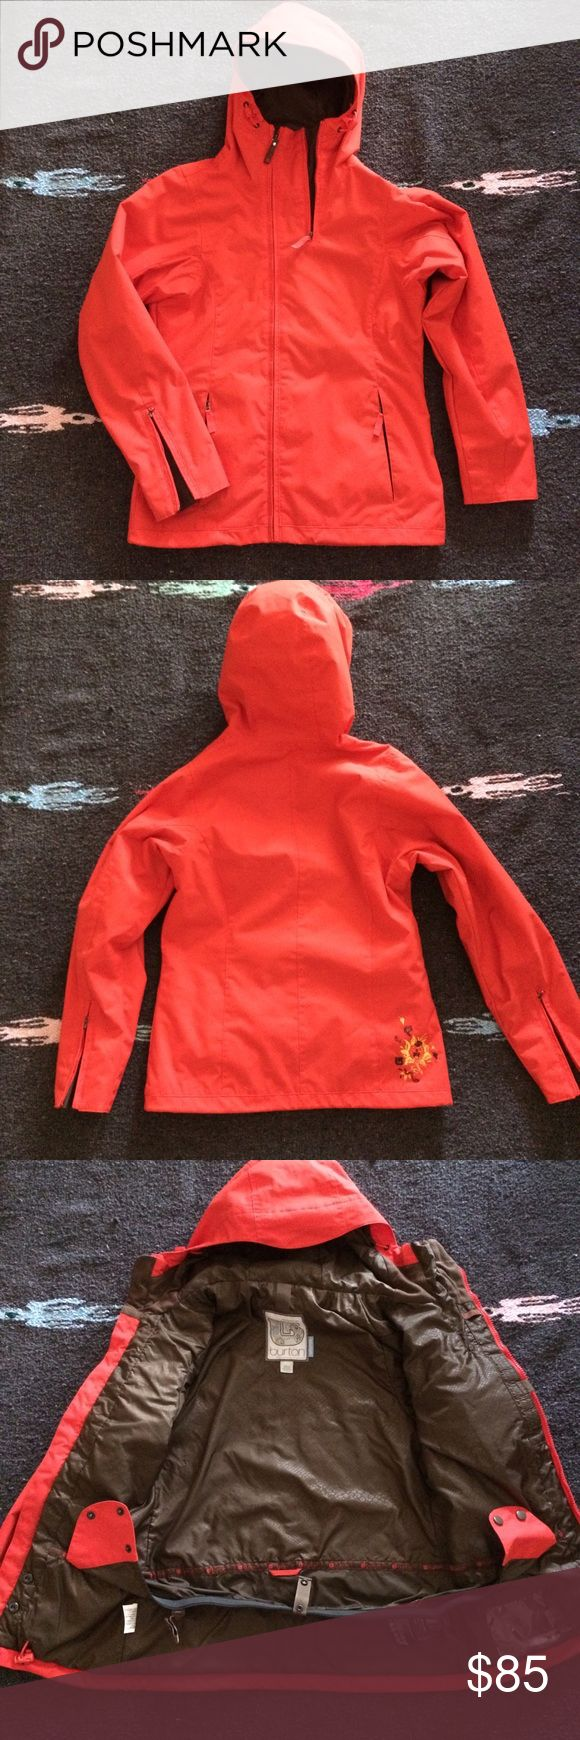 Orange Burton Ski/Snowboard Jacket - XS Women's Burton ski/snowboard jacket in tangerine color. Size XS. This is a true tactical ski jacket with pockets all over. Great condition and great quality. Burton Jackets & Coats